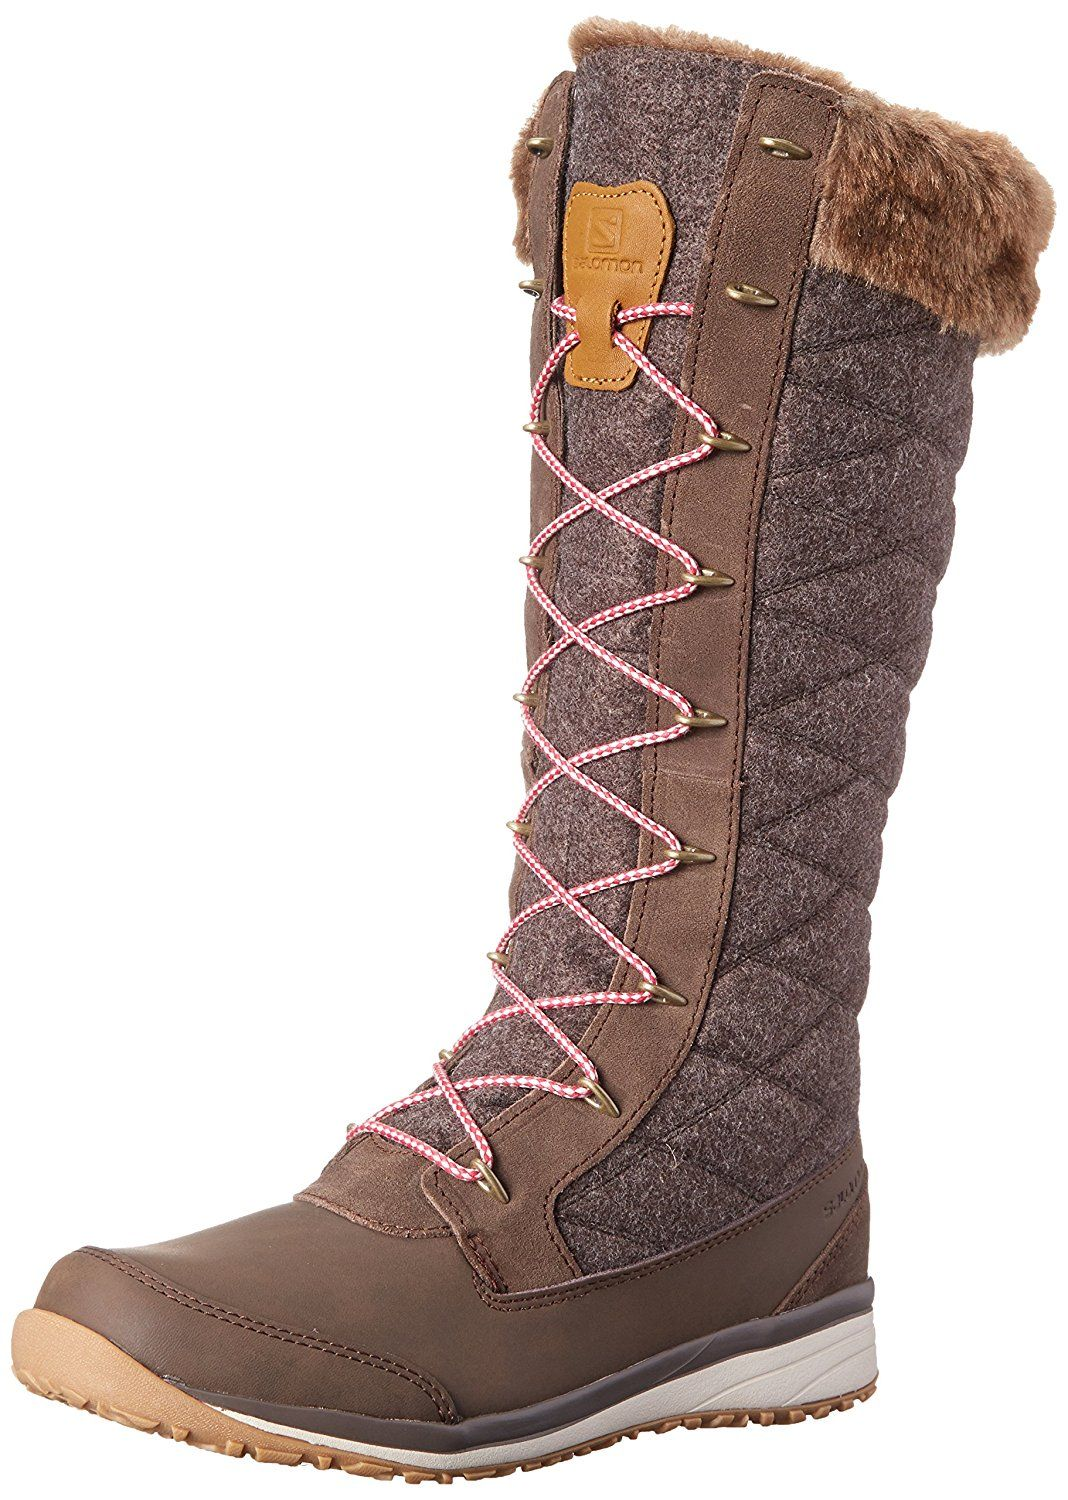 Salomon Women's Hime High Snow Boot -- This is an Amazon Affiliate link. You